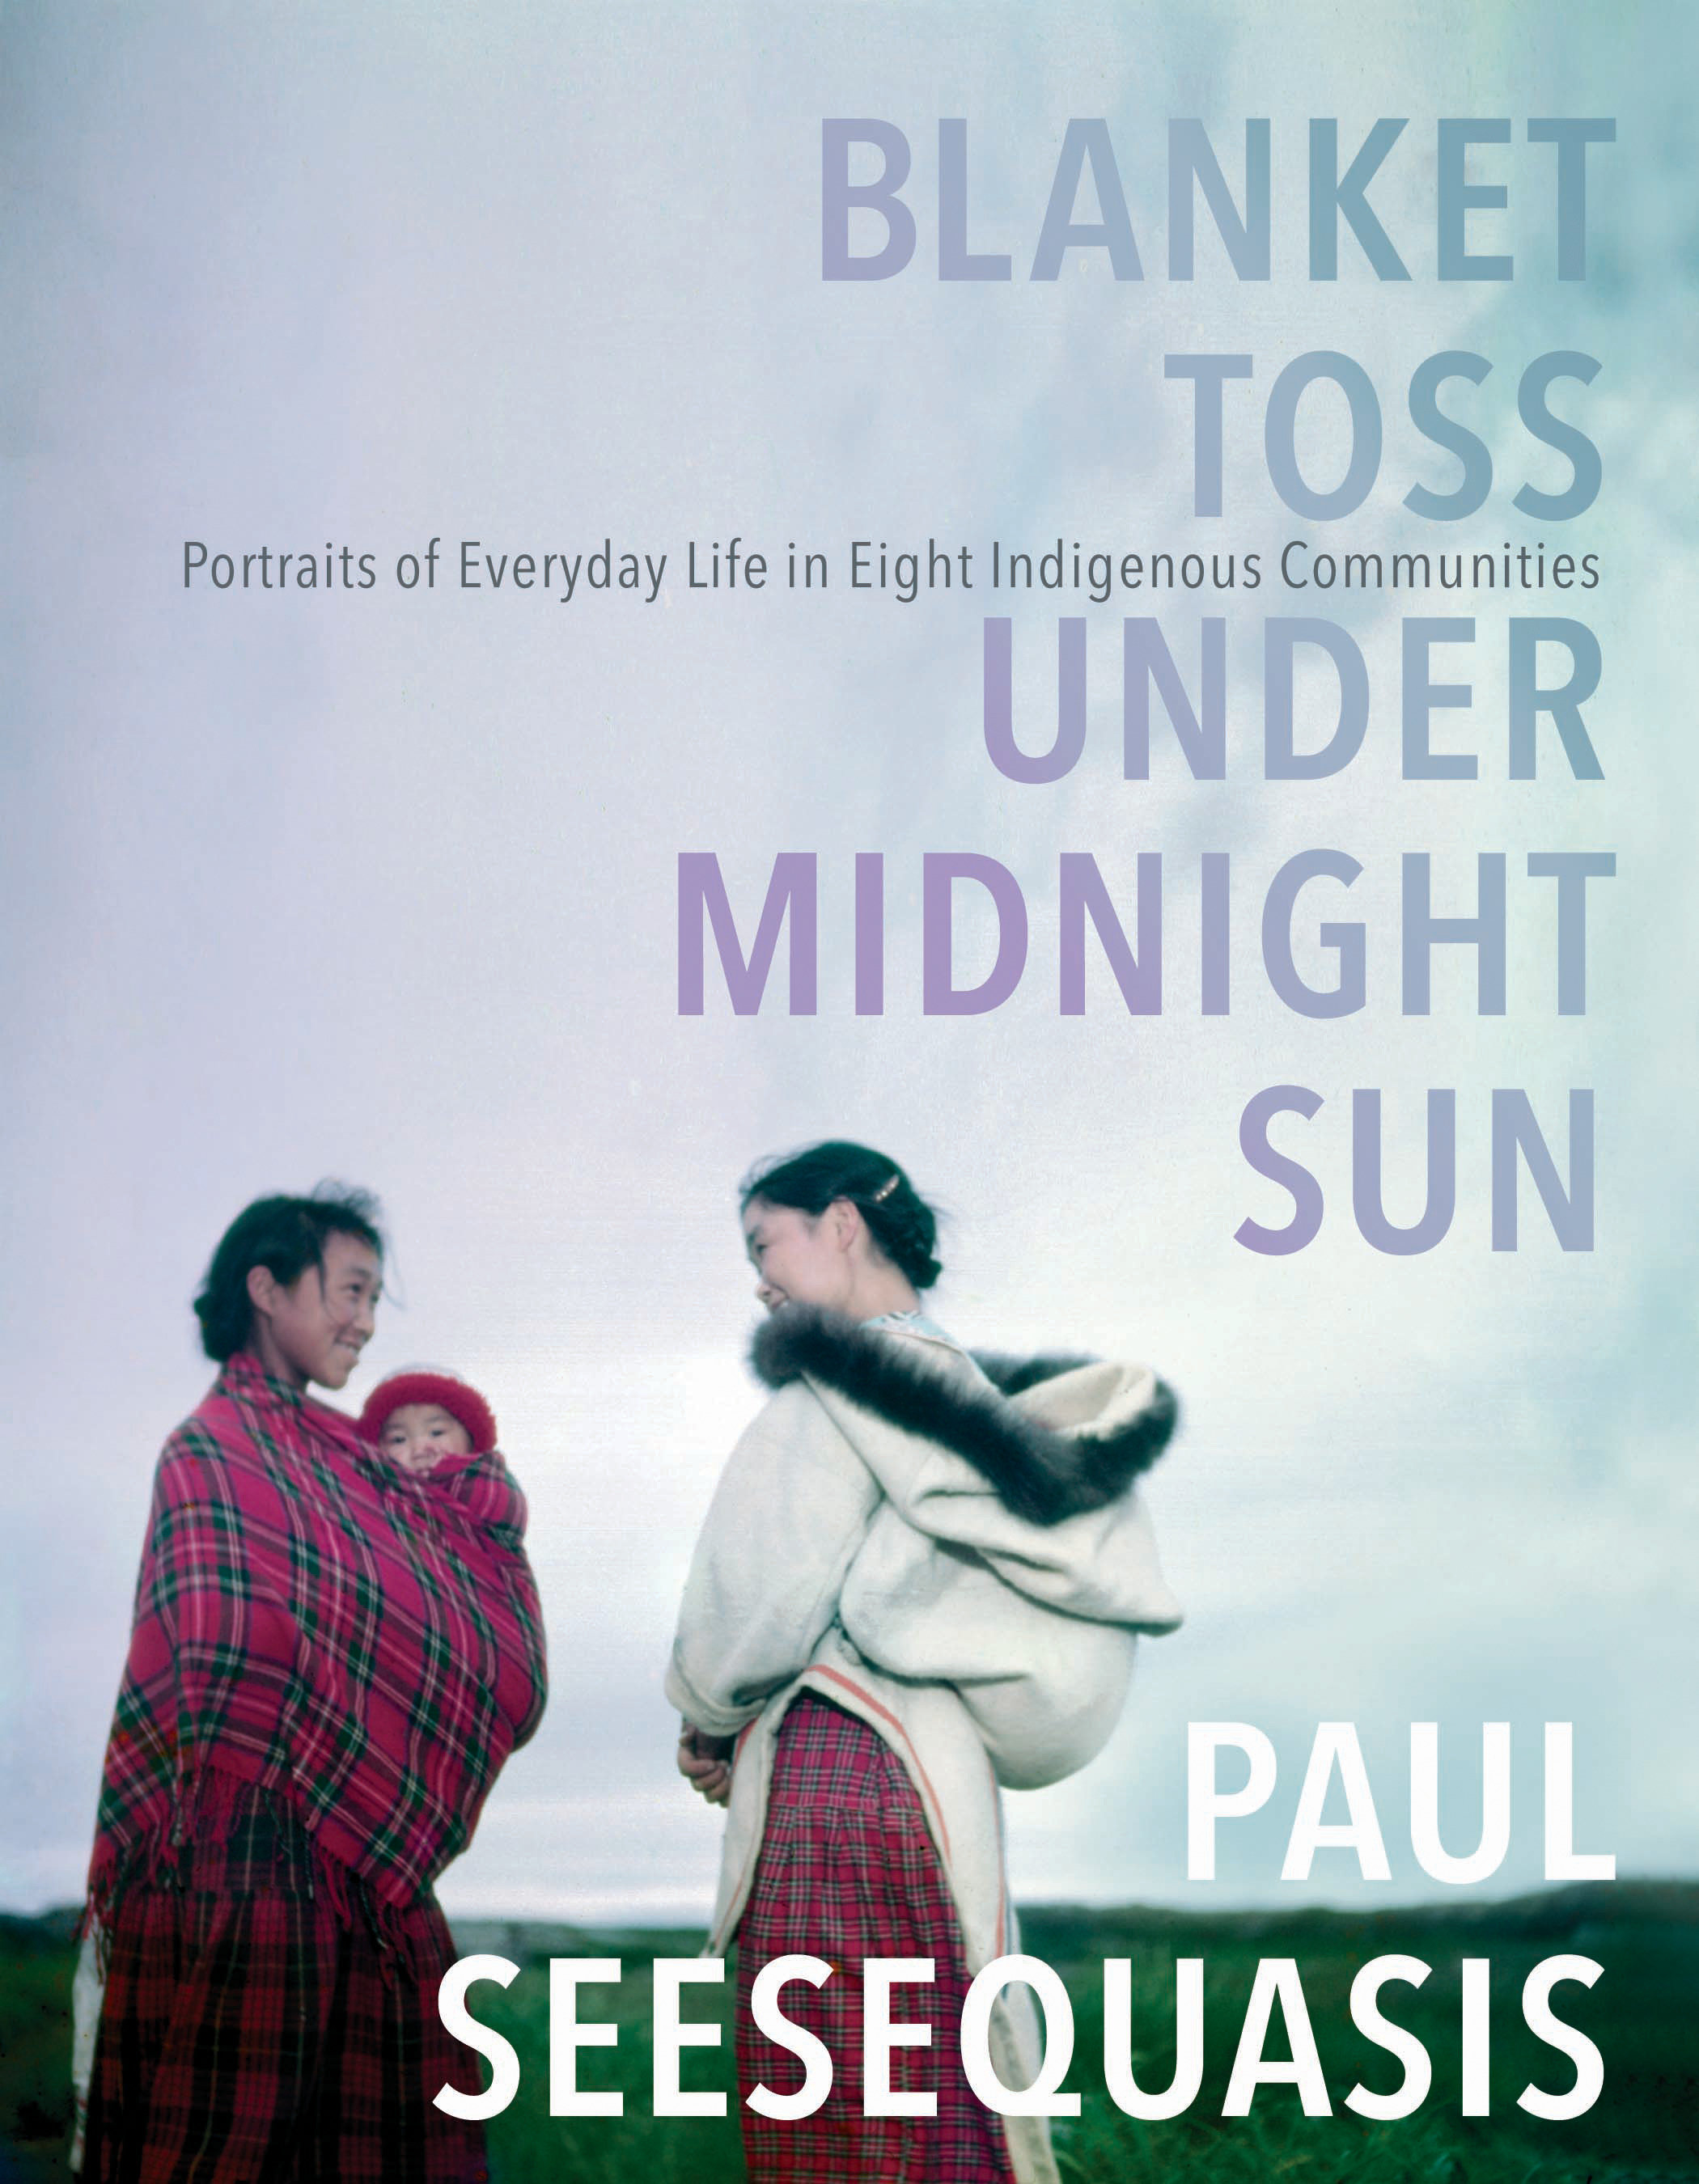 Cover Image of Blanket Toss Under Midnight Sun